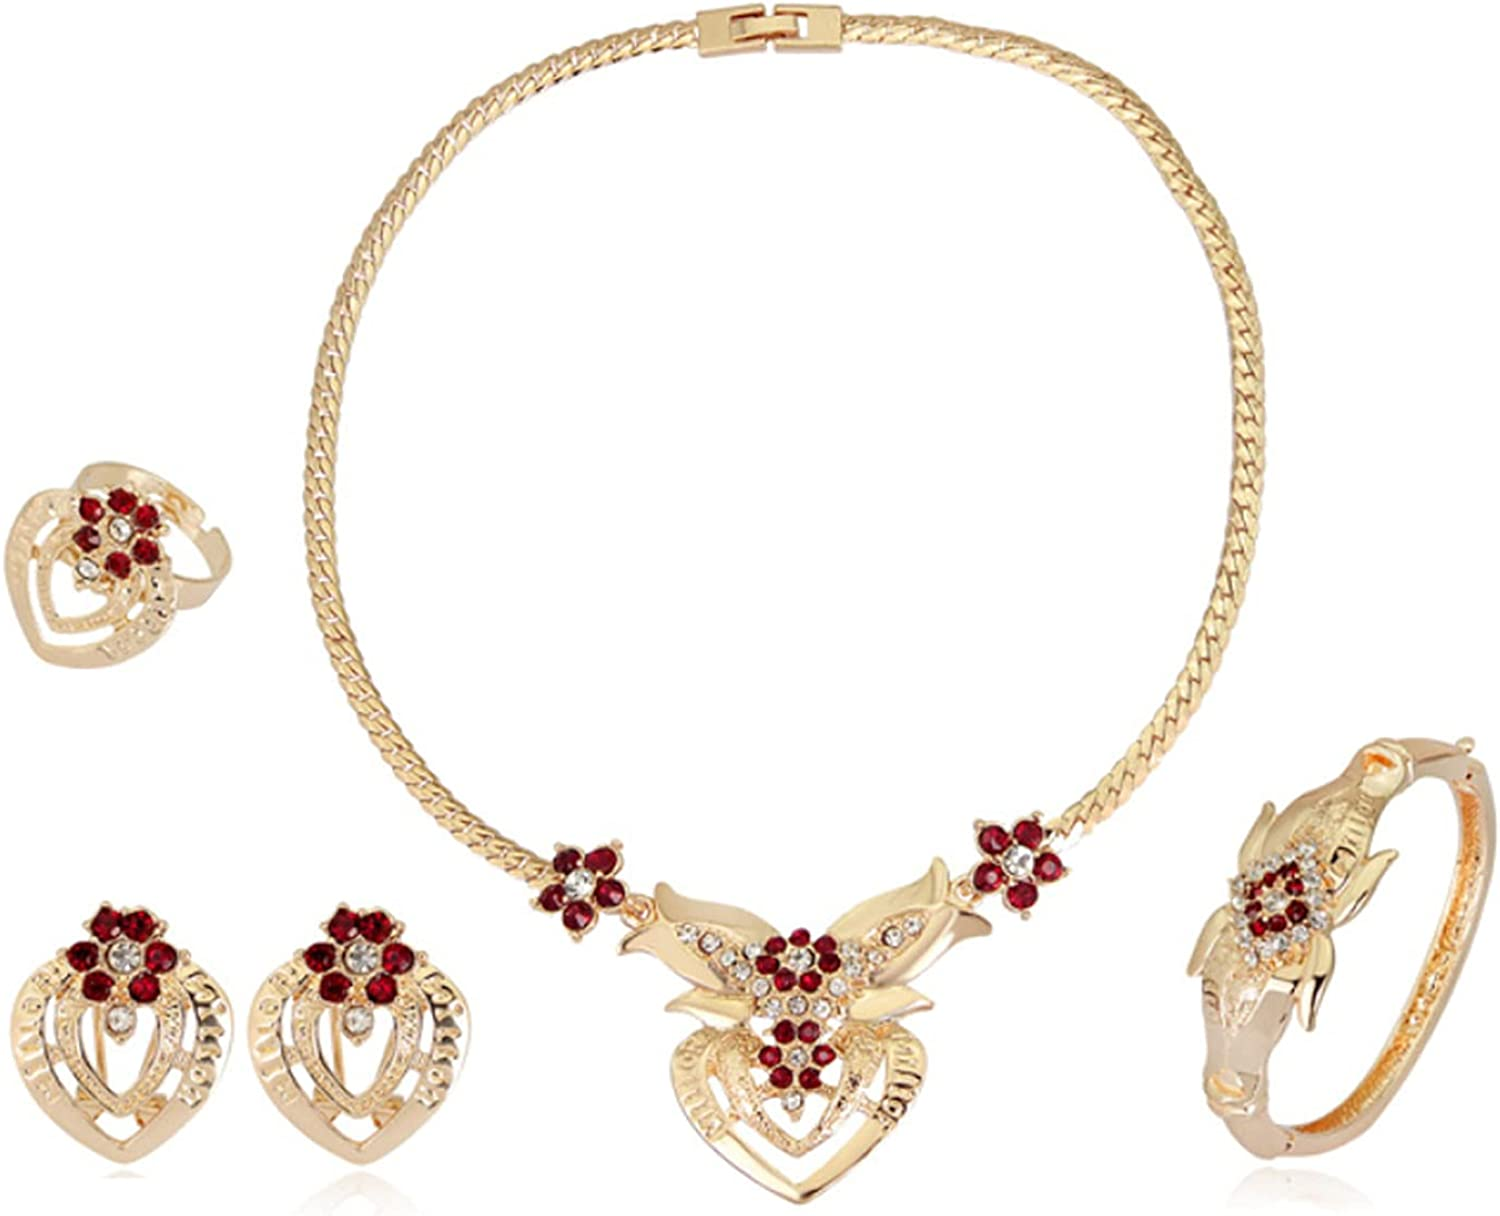 Jewelry Set for Women, Necklace Bracelet Earrings Ring Four-piece Suit Gold, Bridal Bridesmaid Wedding Banquet Dress Jewelrys